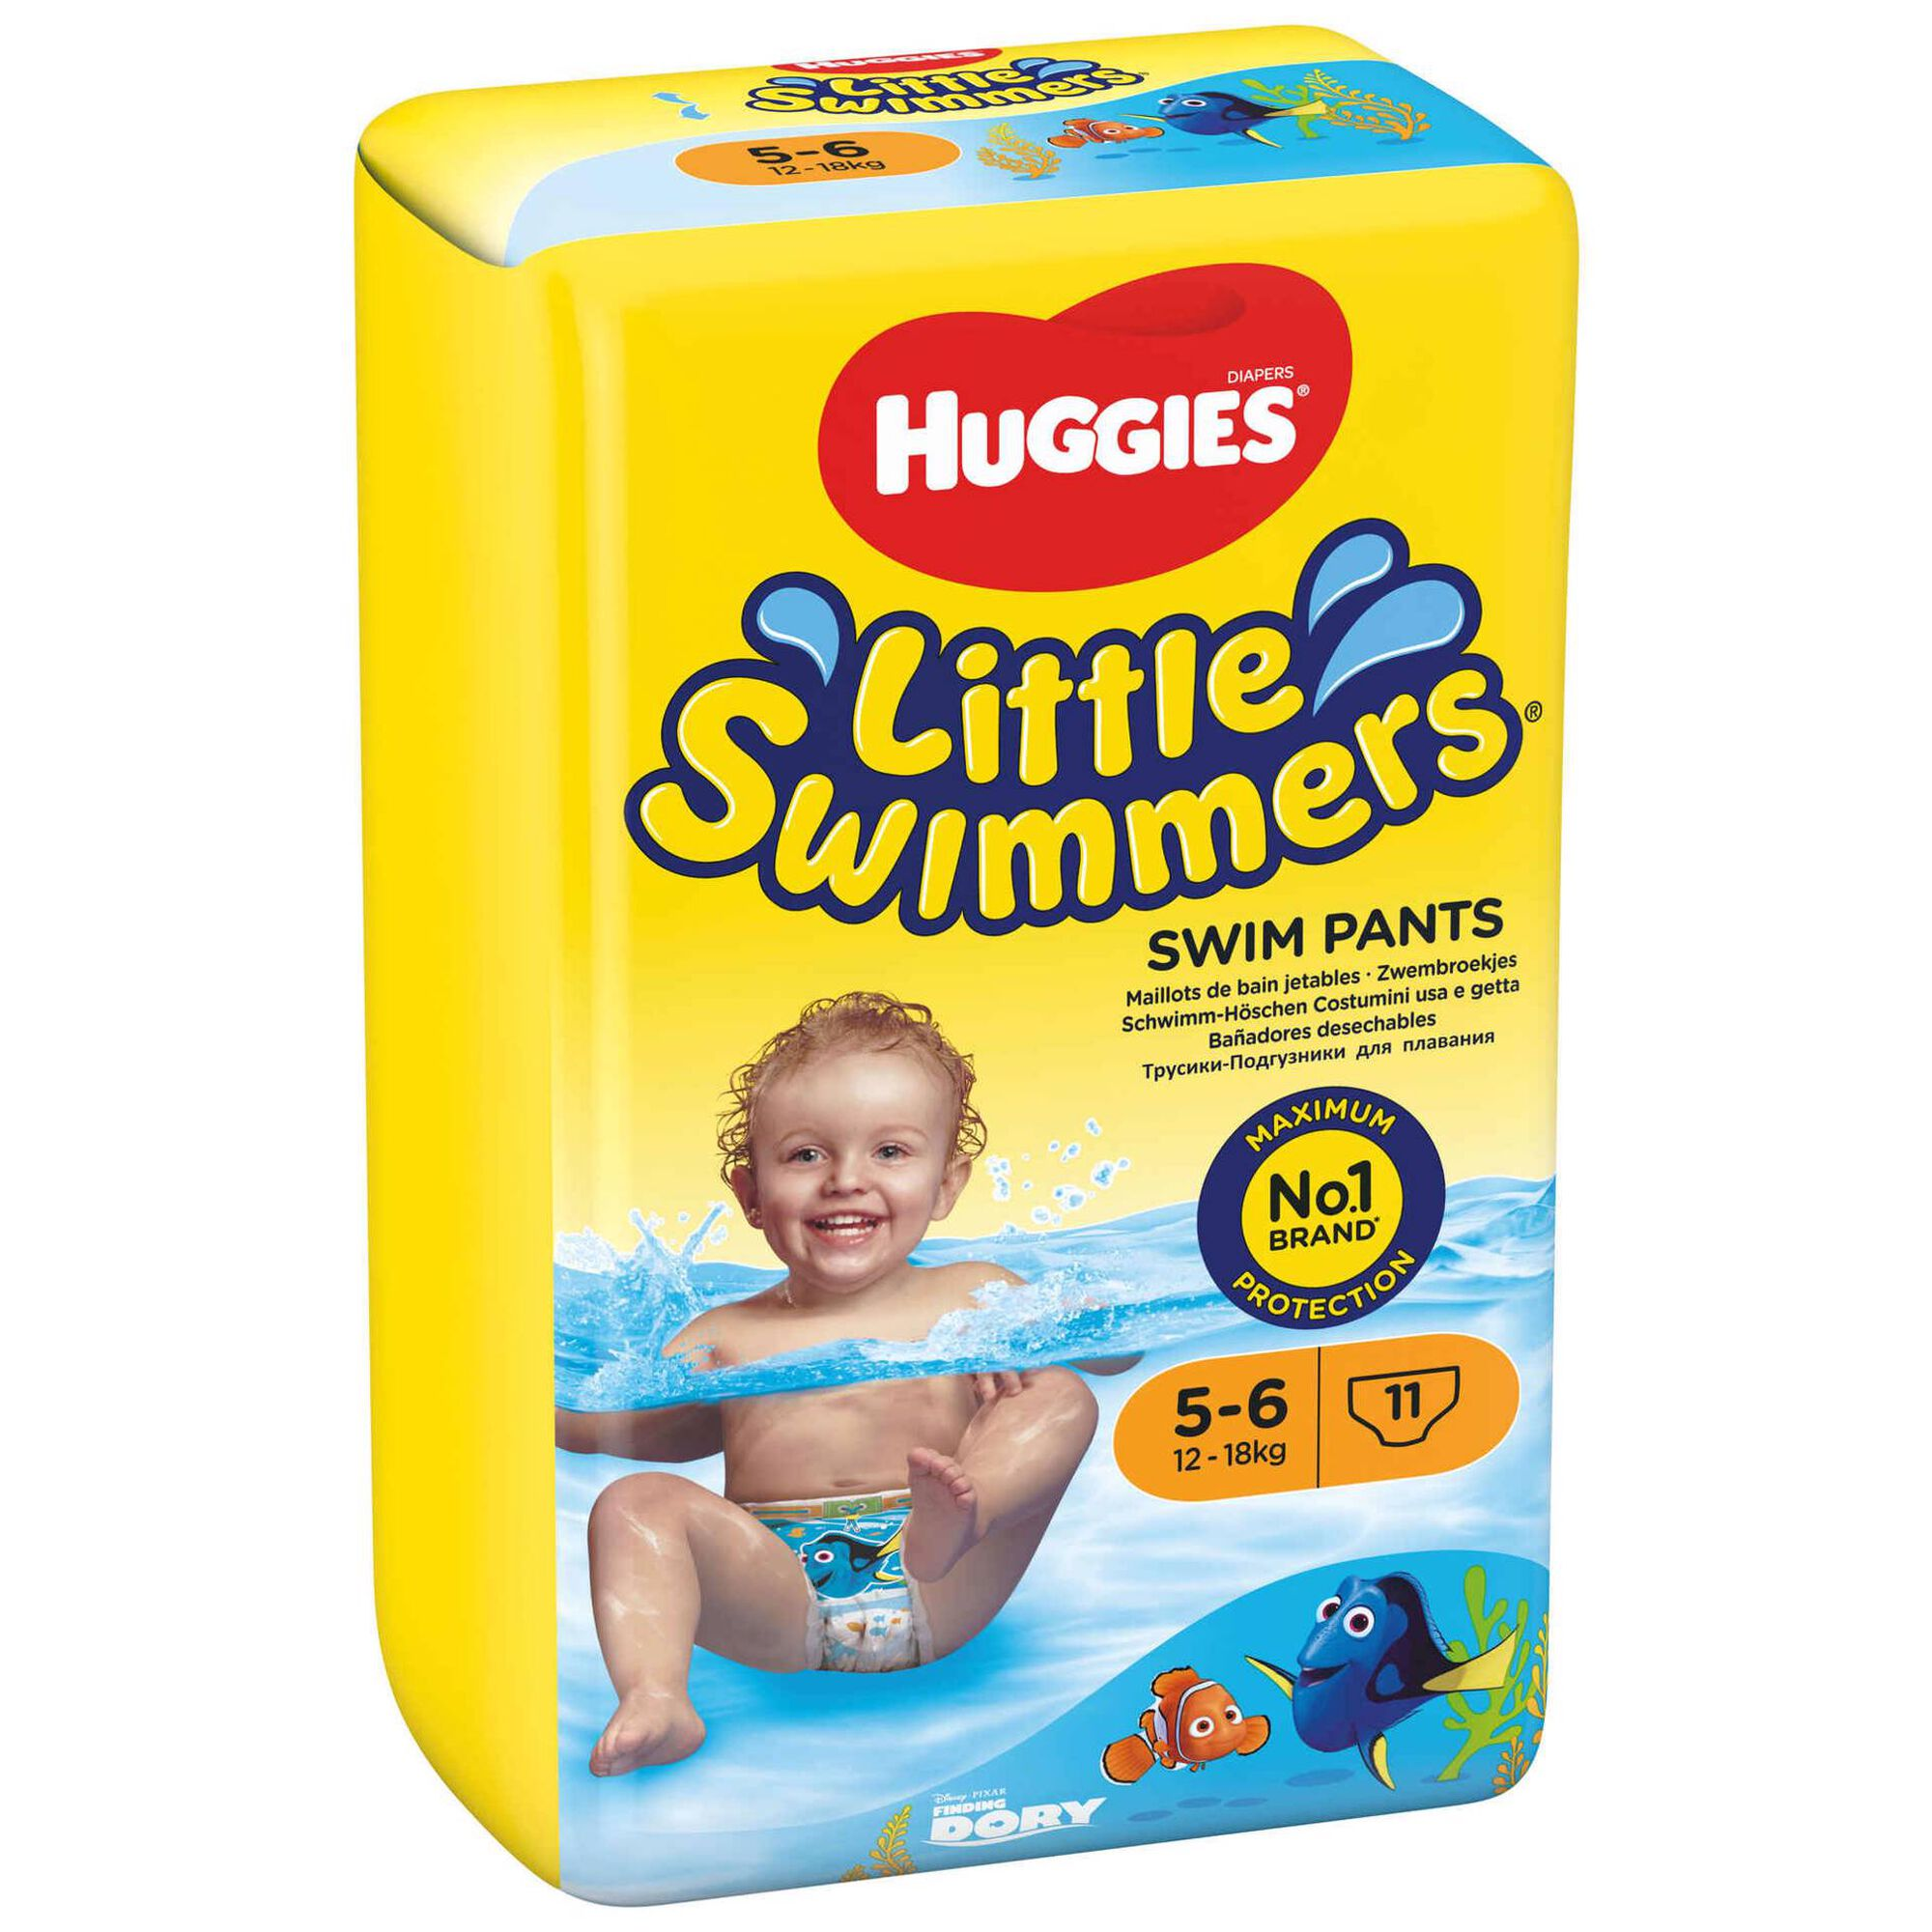 Cuecas Banho Little Swimmers 12-18kg T5-6